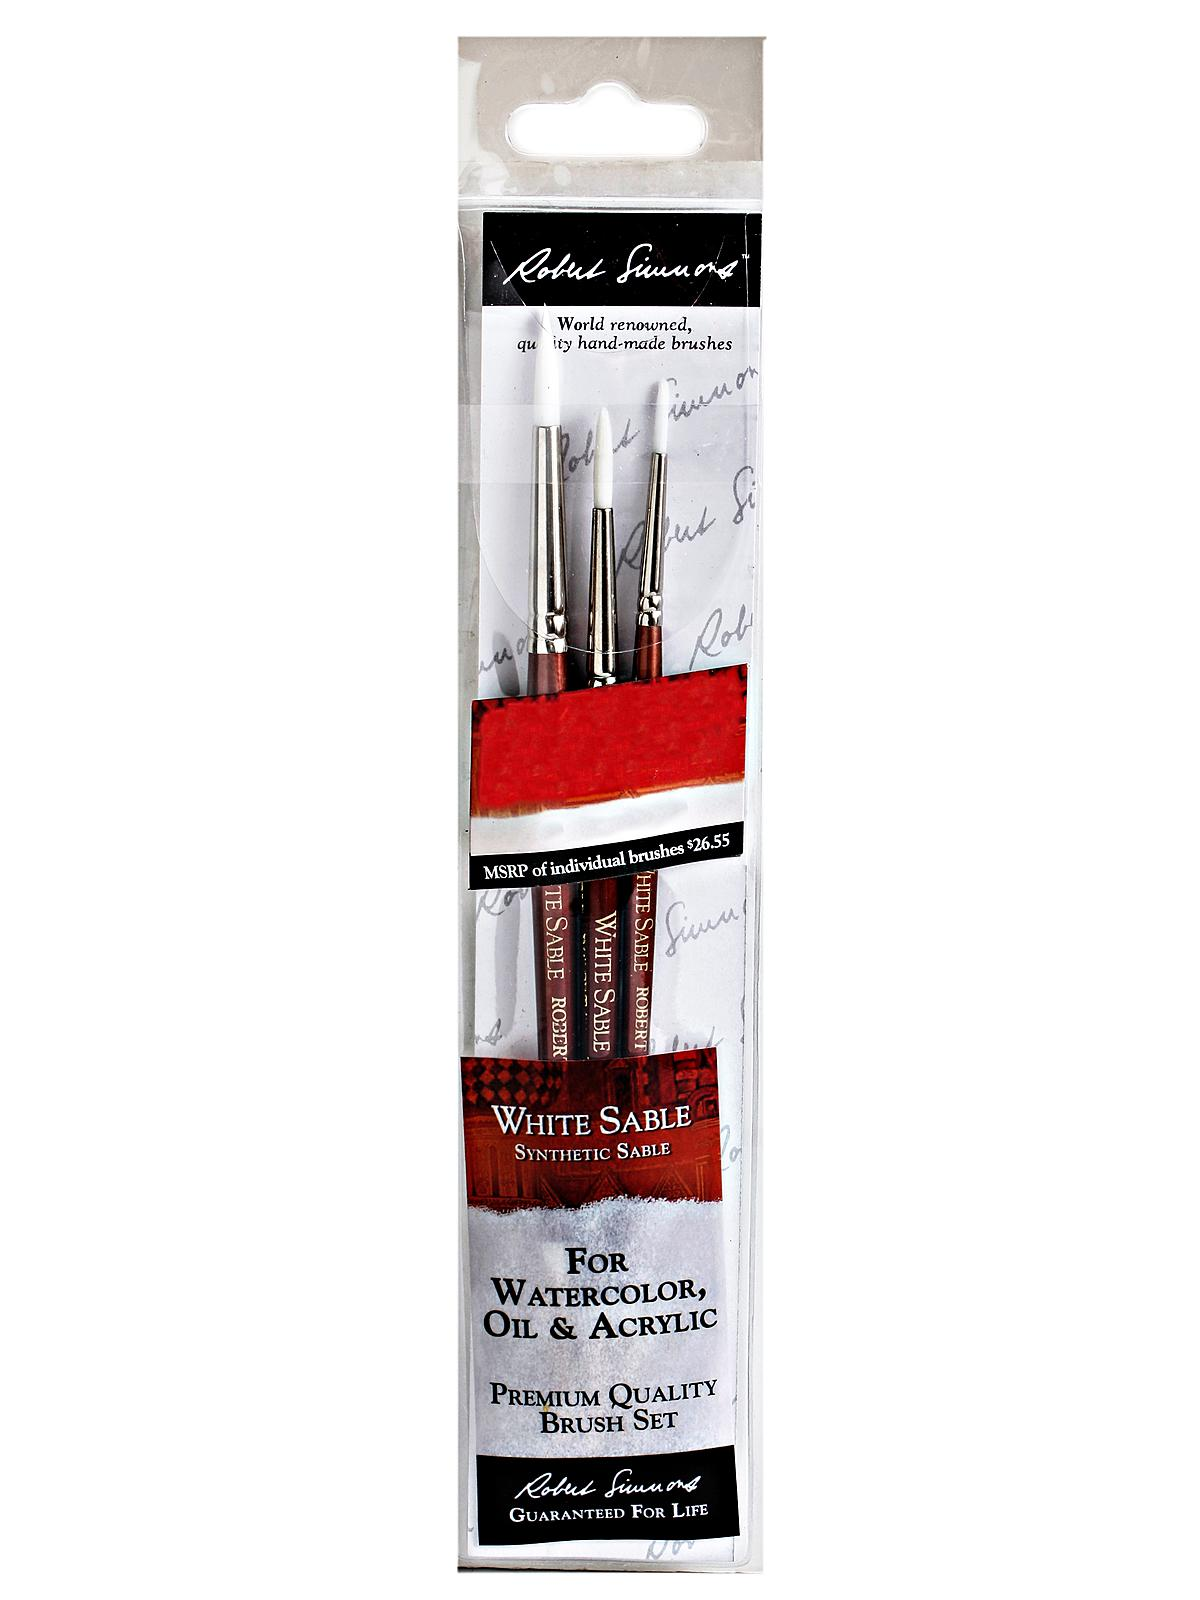 WSS-3 Brush Set